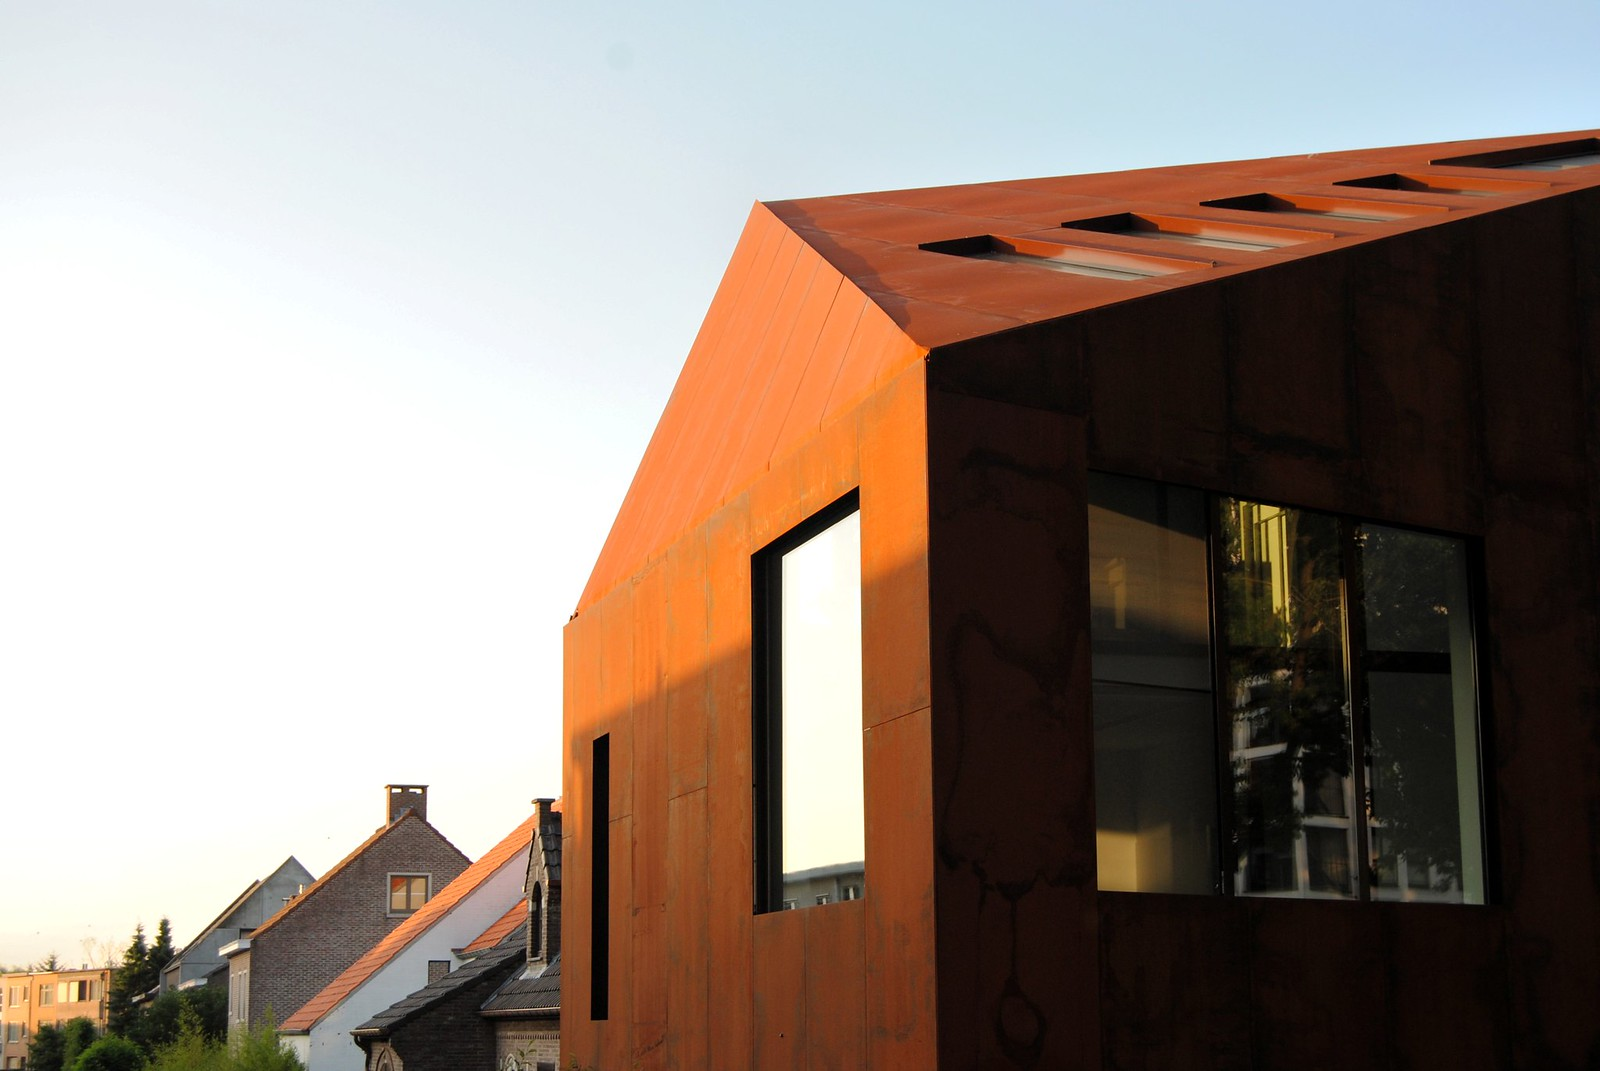 A copper-toned house features contemporary, geometric architecture.